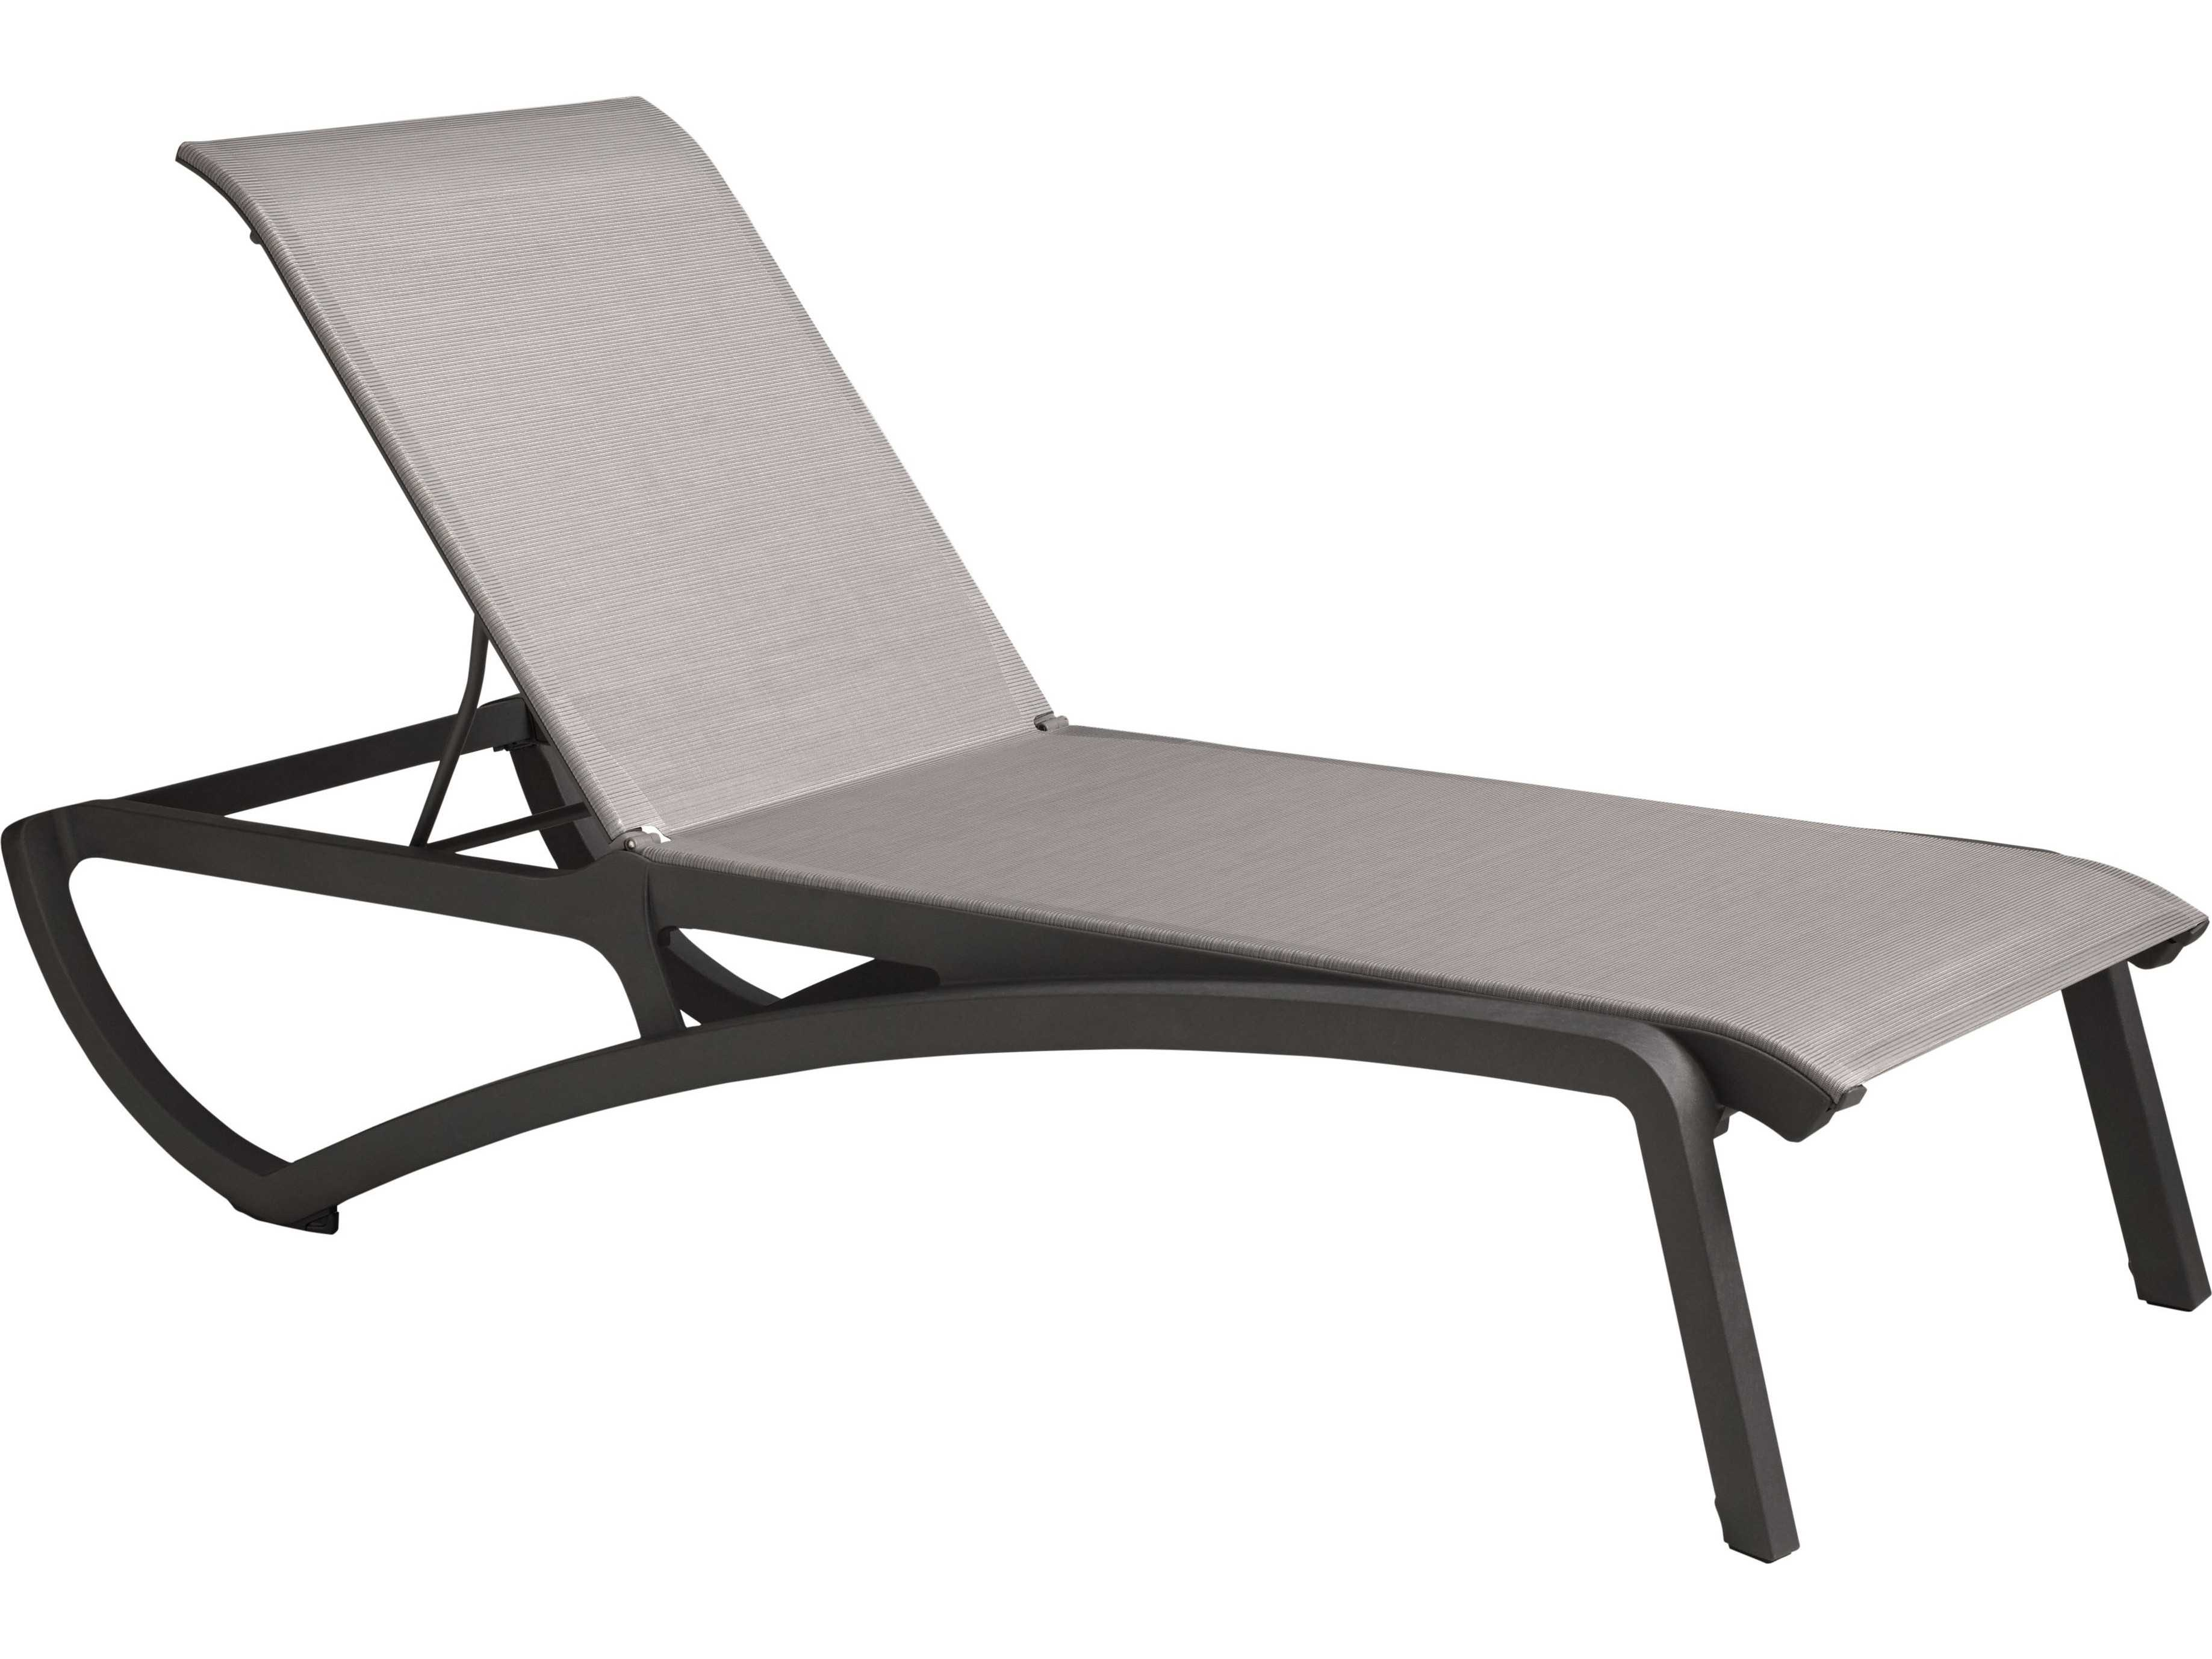 Grosfillex sunset chaise lounge sold in 2 gxus636288 - Grosfillex chaise longue ...